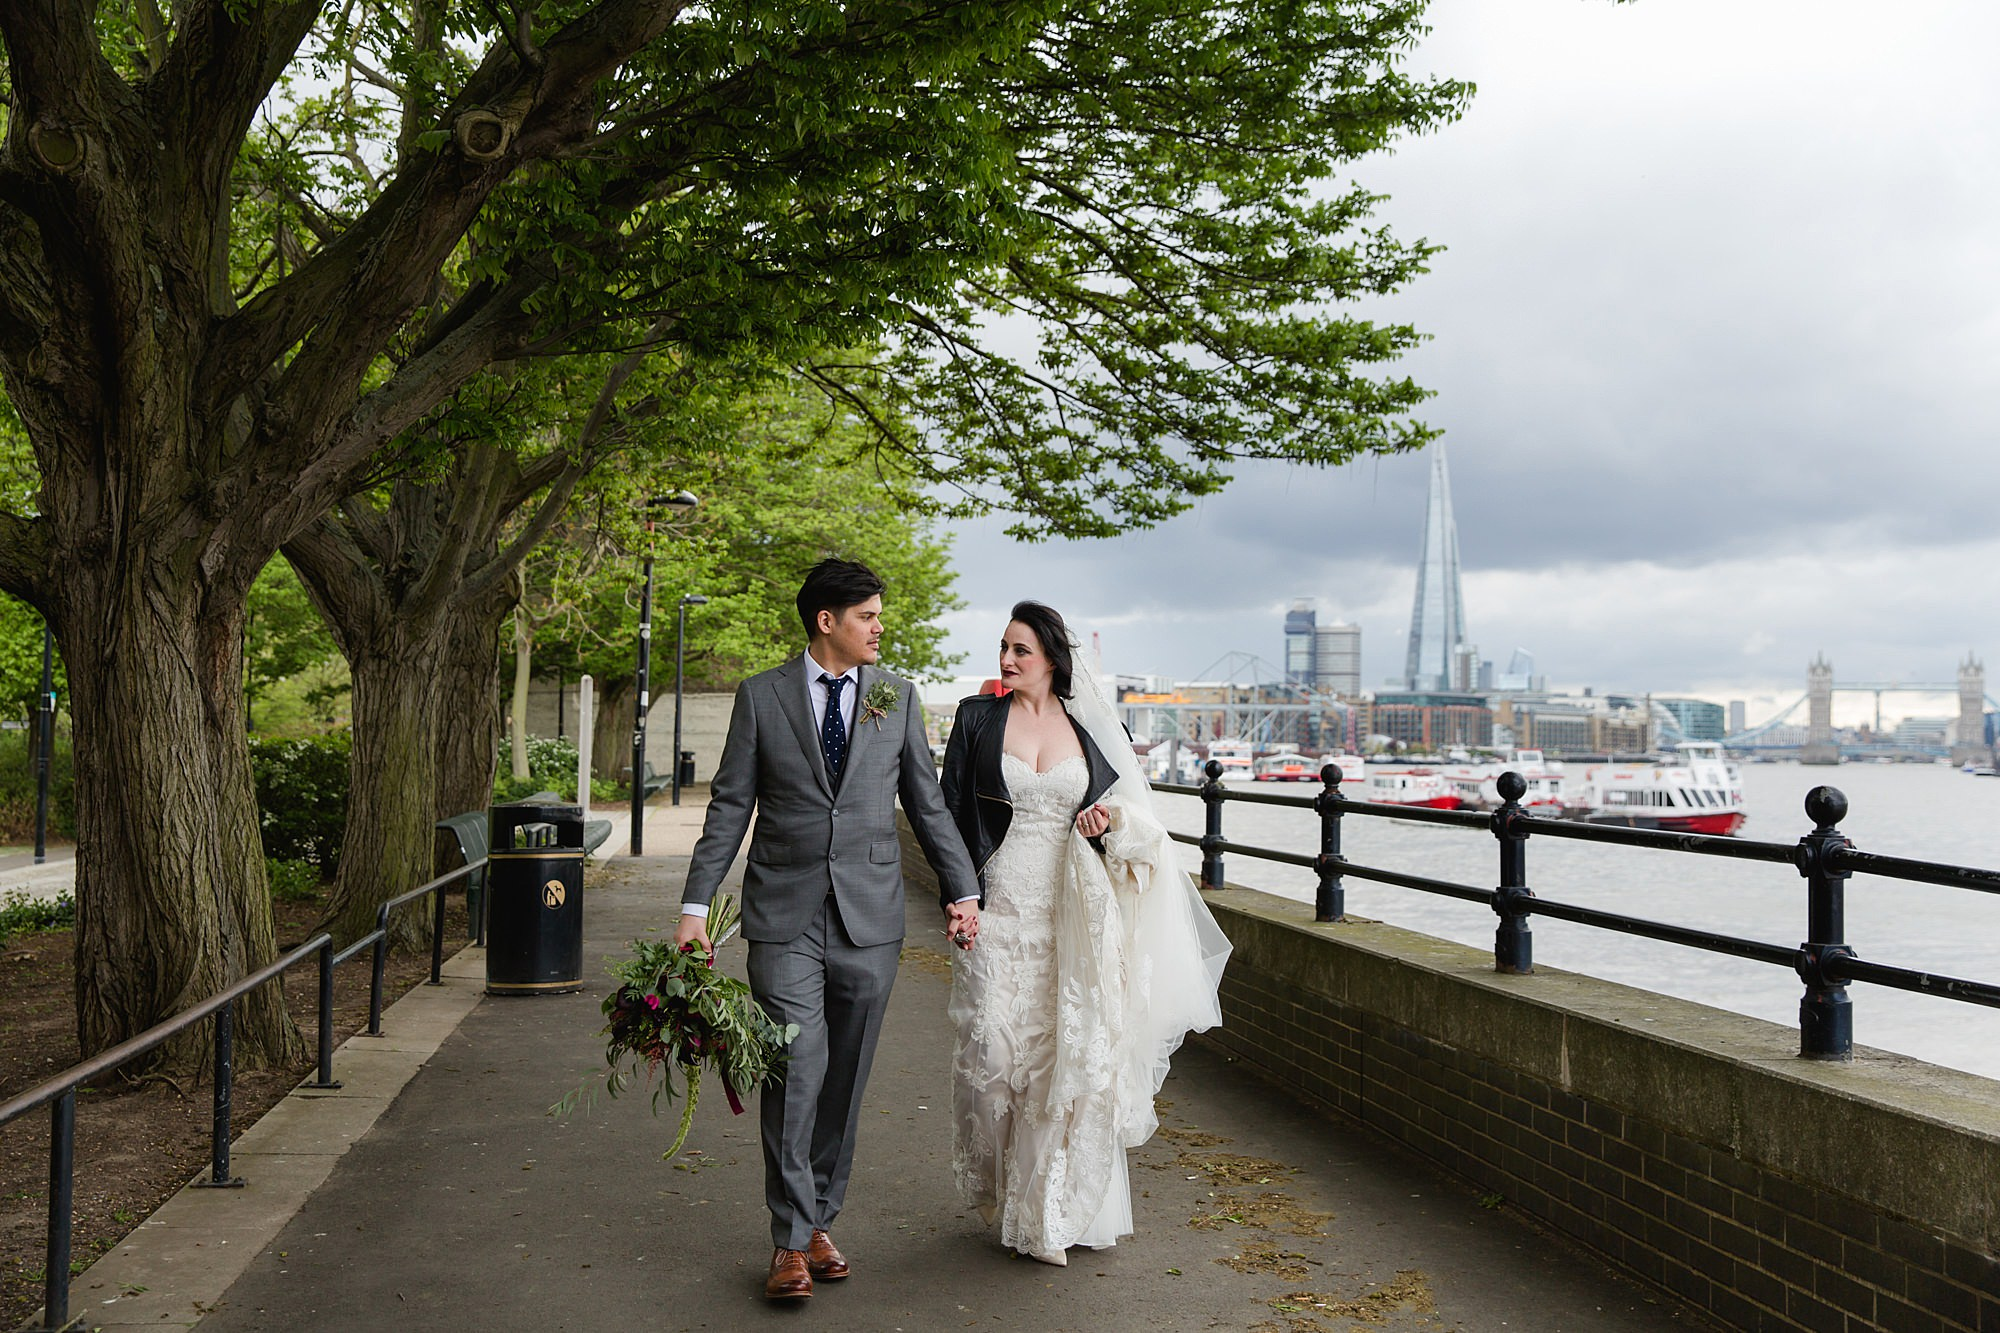 Brunel museum wedding bride and groom walking by the Thames